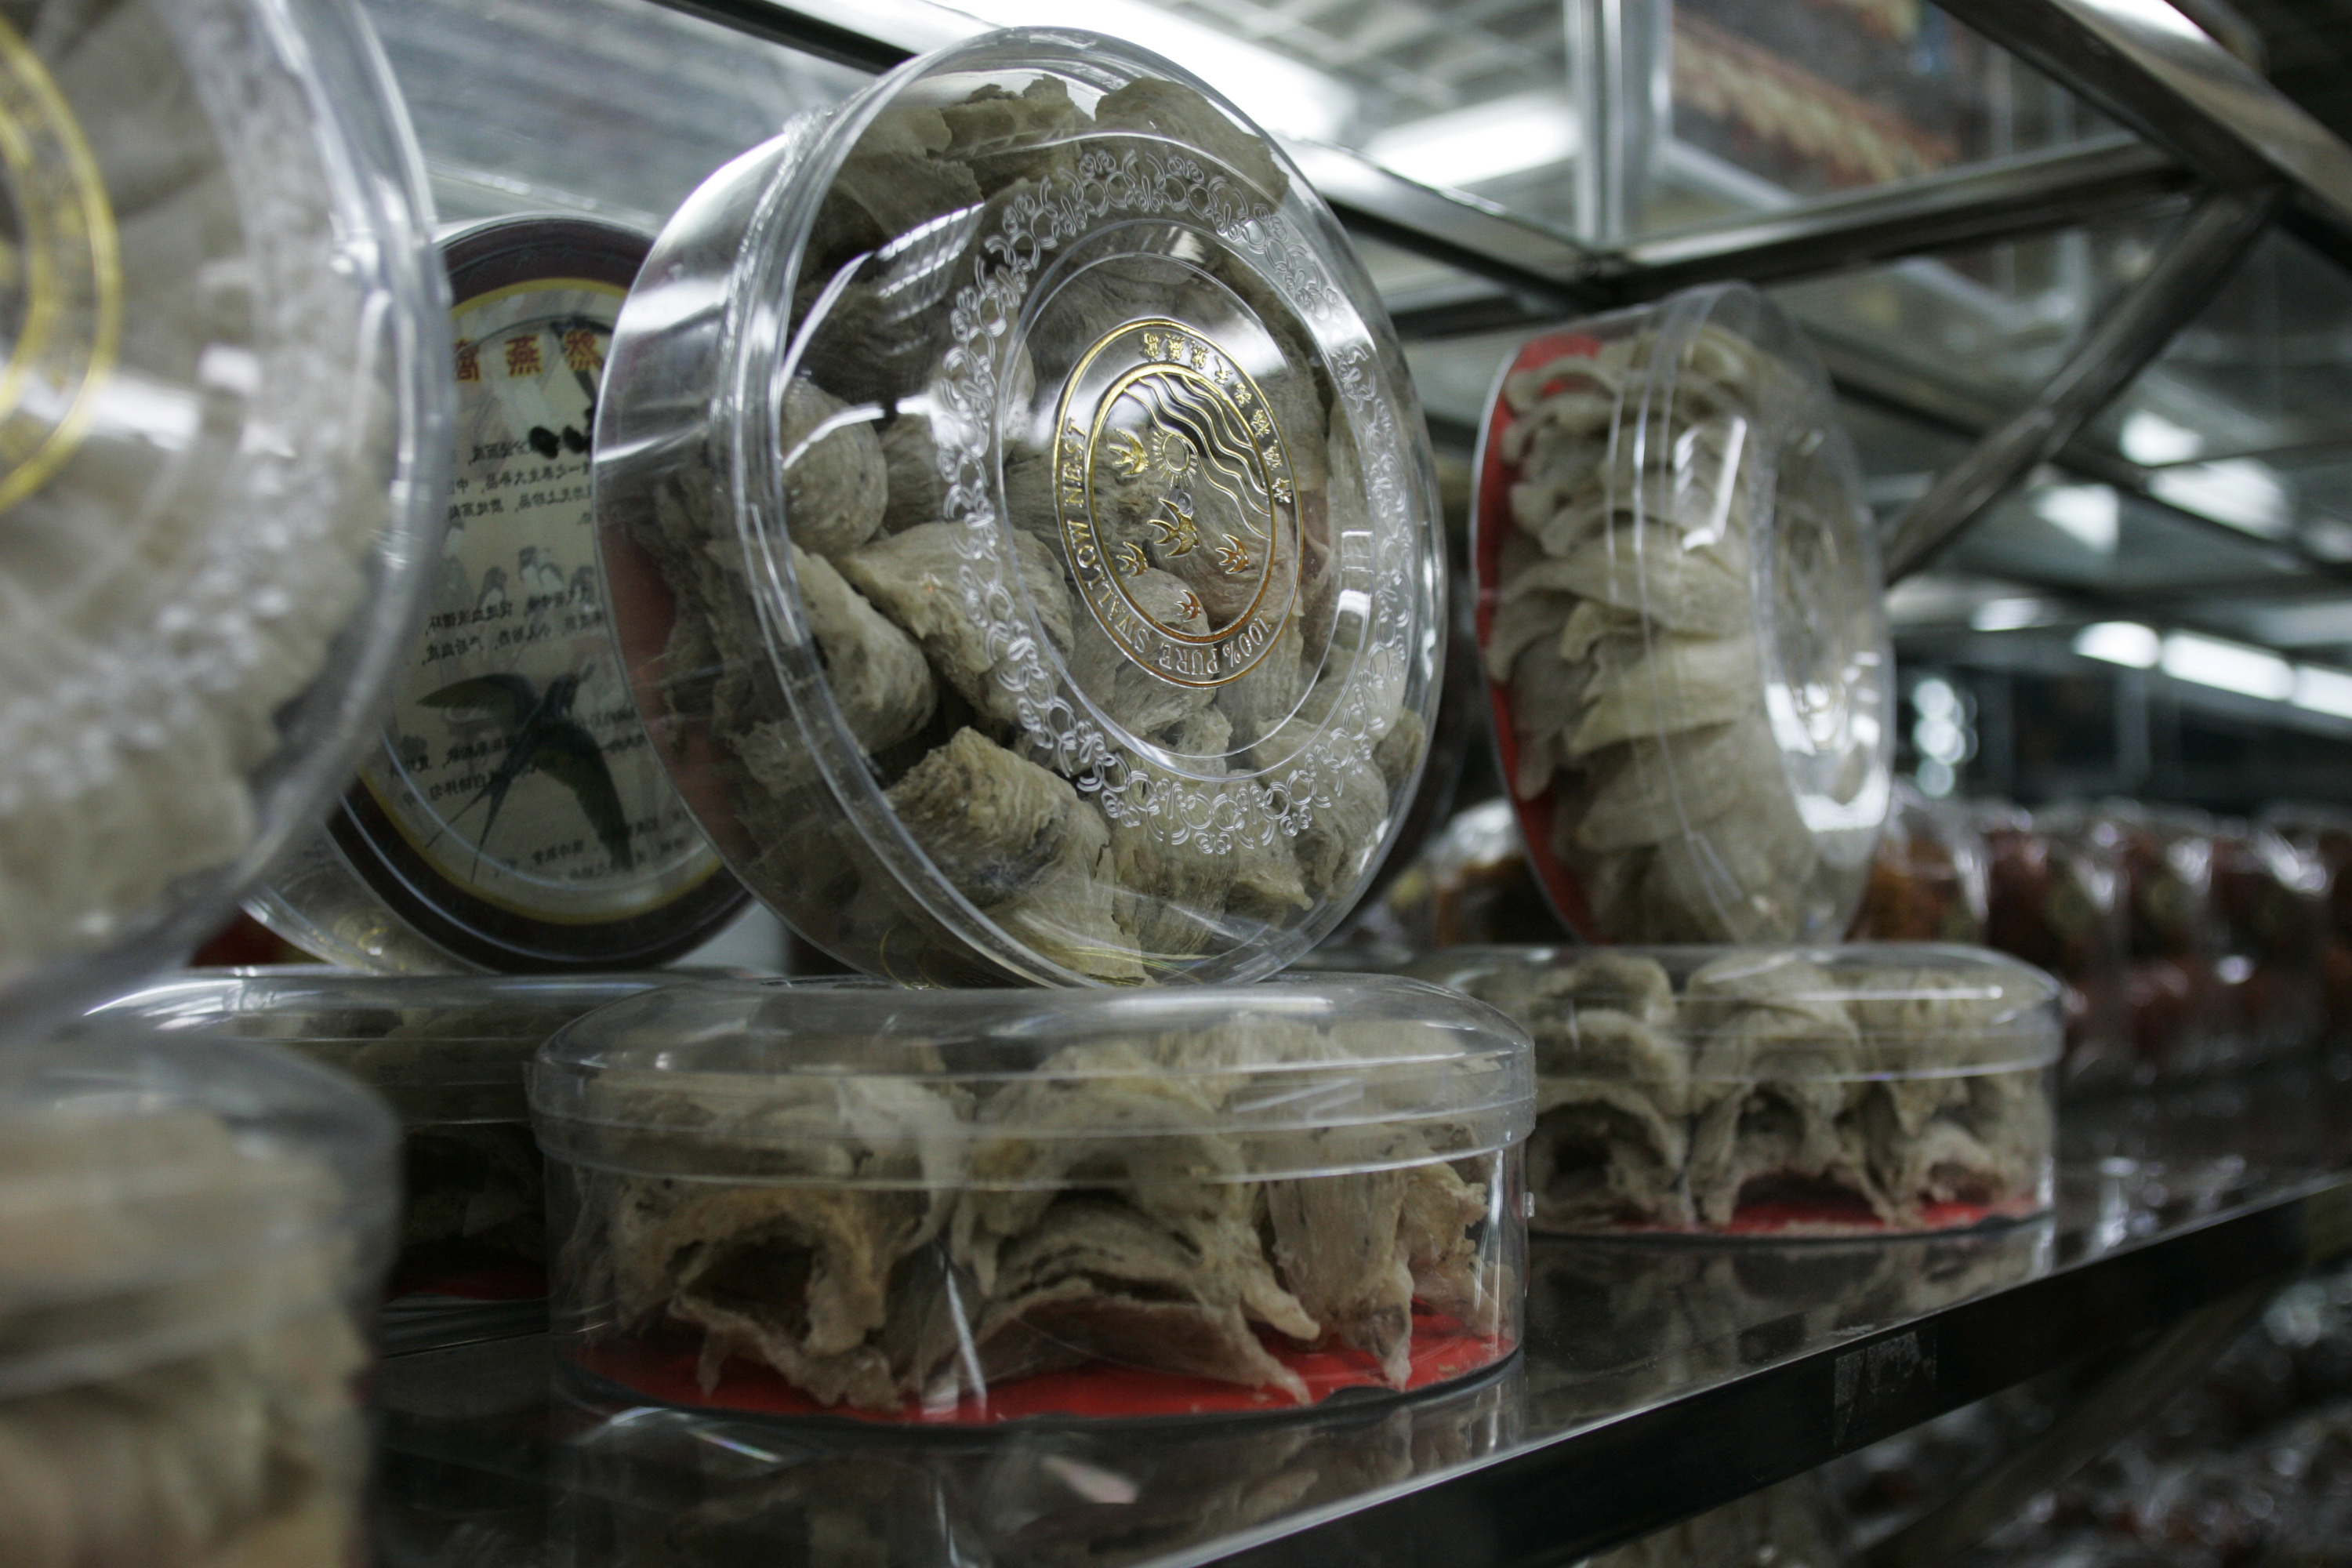 Packages of birds nests are seen at a store in the southern Chinese city of Guangzhou in Guangdong province